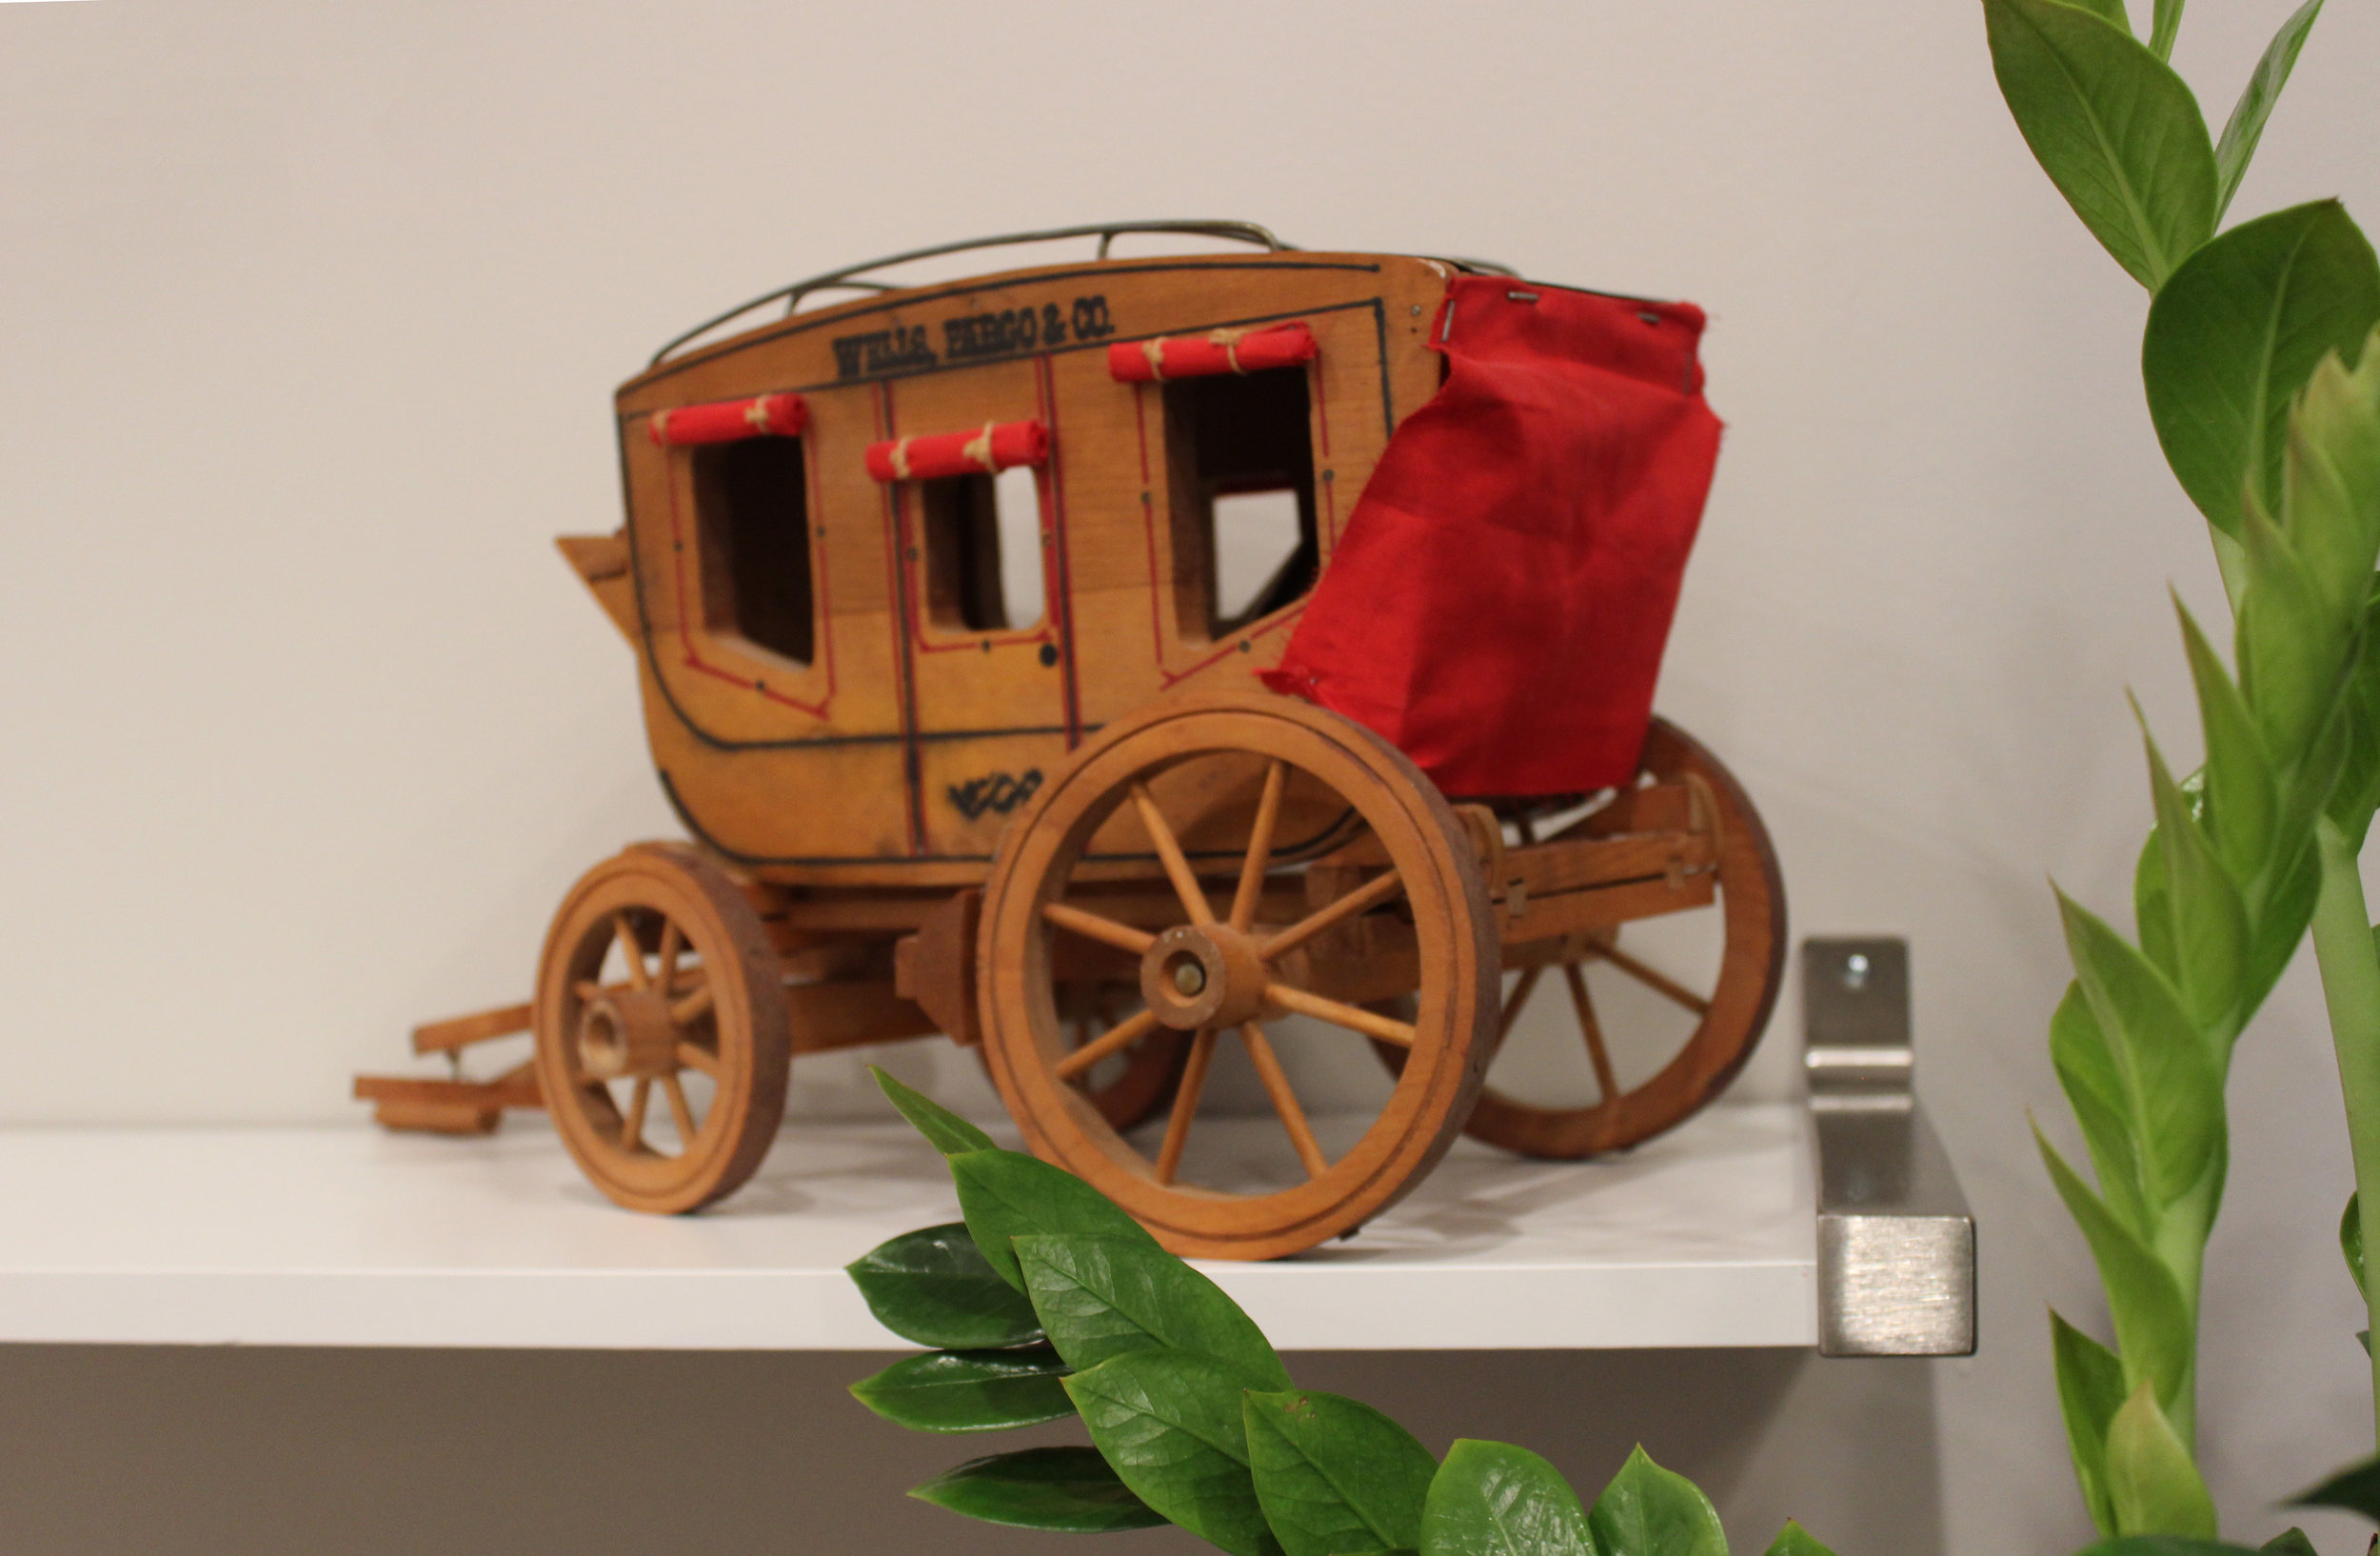 O-ho the Wells Fargo Wagon is a-comin' down the street.. // Details from the financial office's conference room